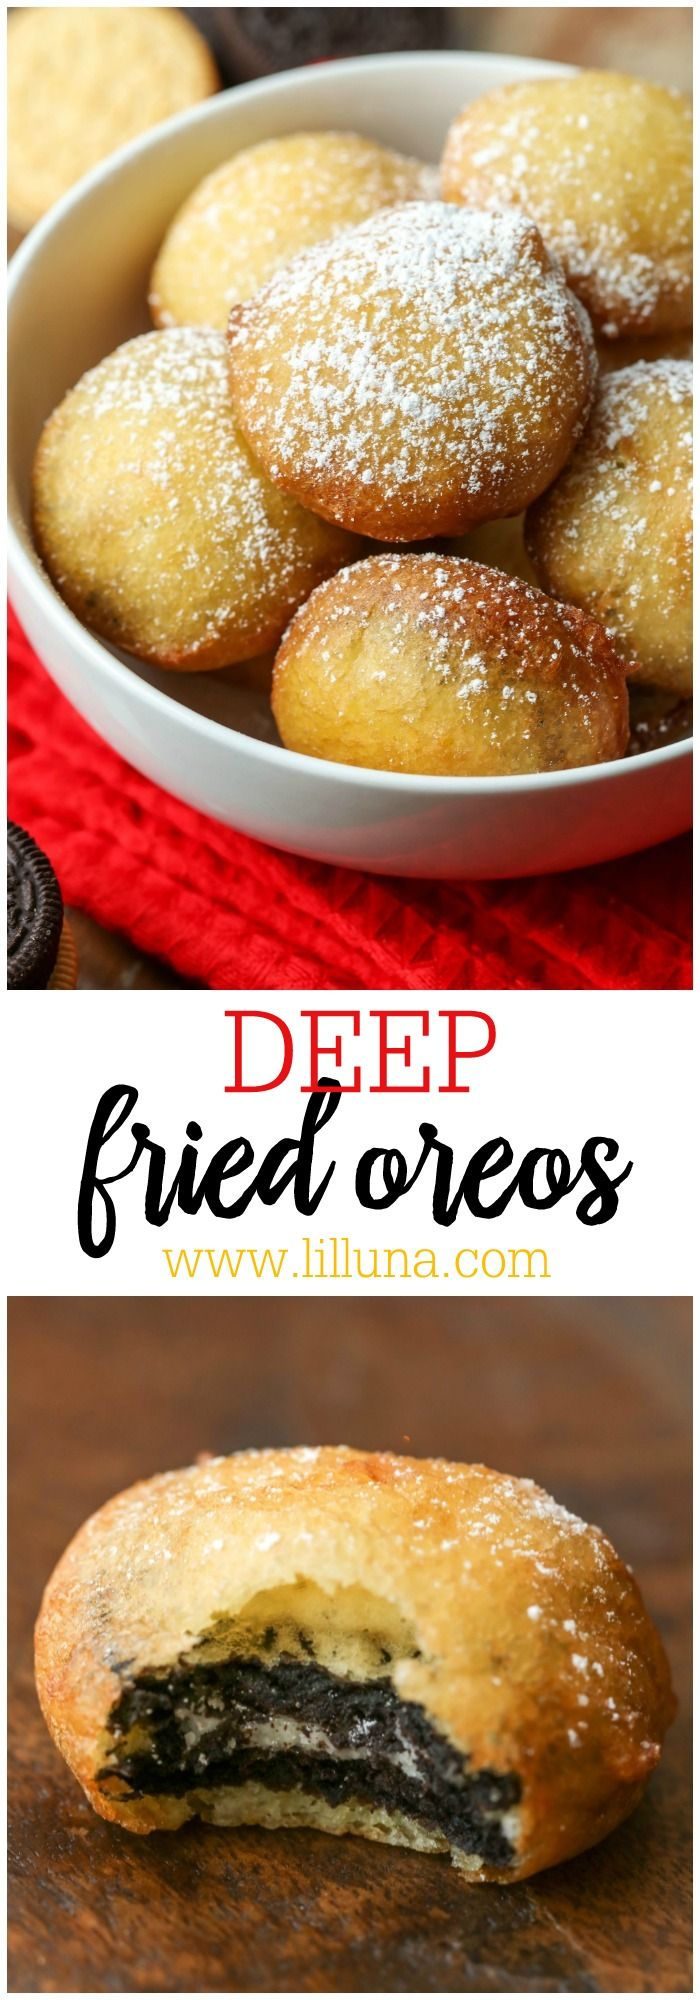 Deep Fried Oreos Deep Fried Oreos - one of our favorite guilty pleasures!! They can be made with your favorite variety of Oreo, fried to perfection and topped with powdered sugar.